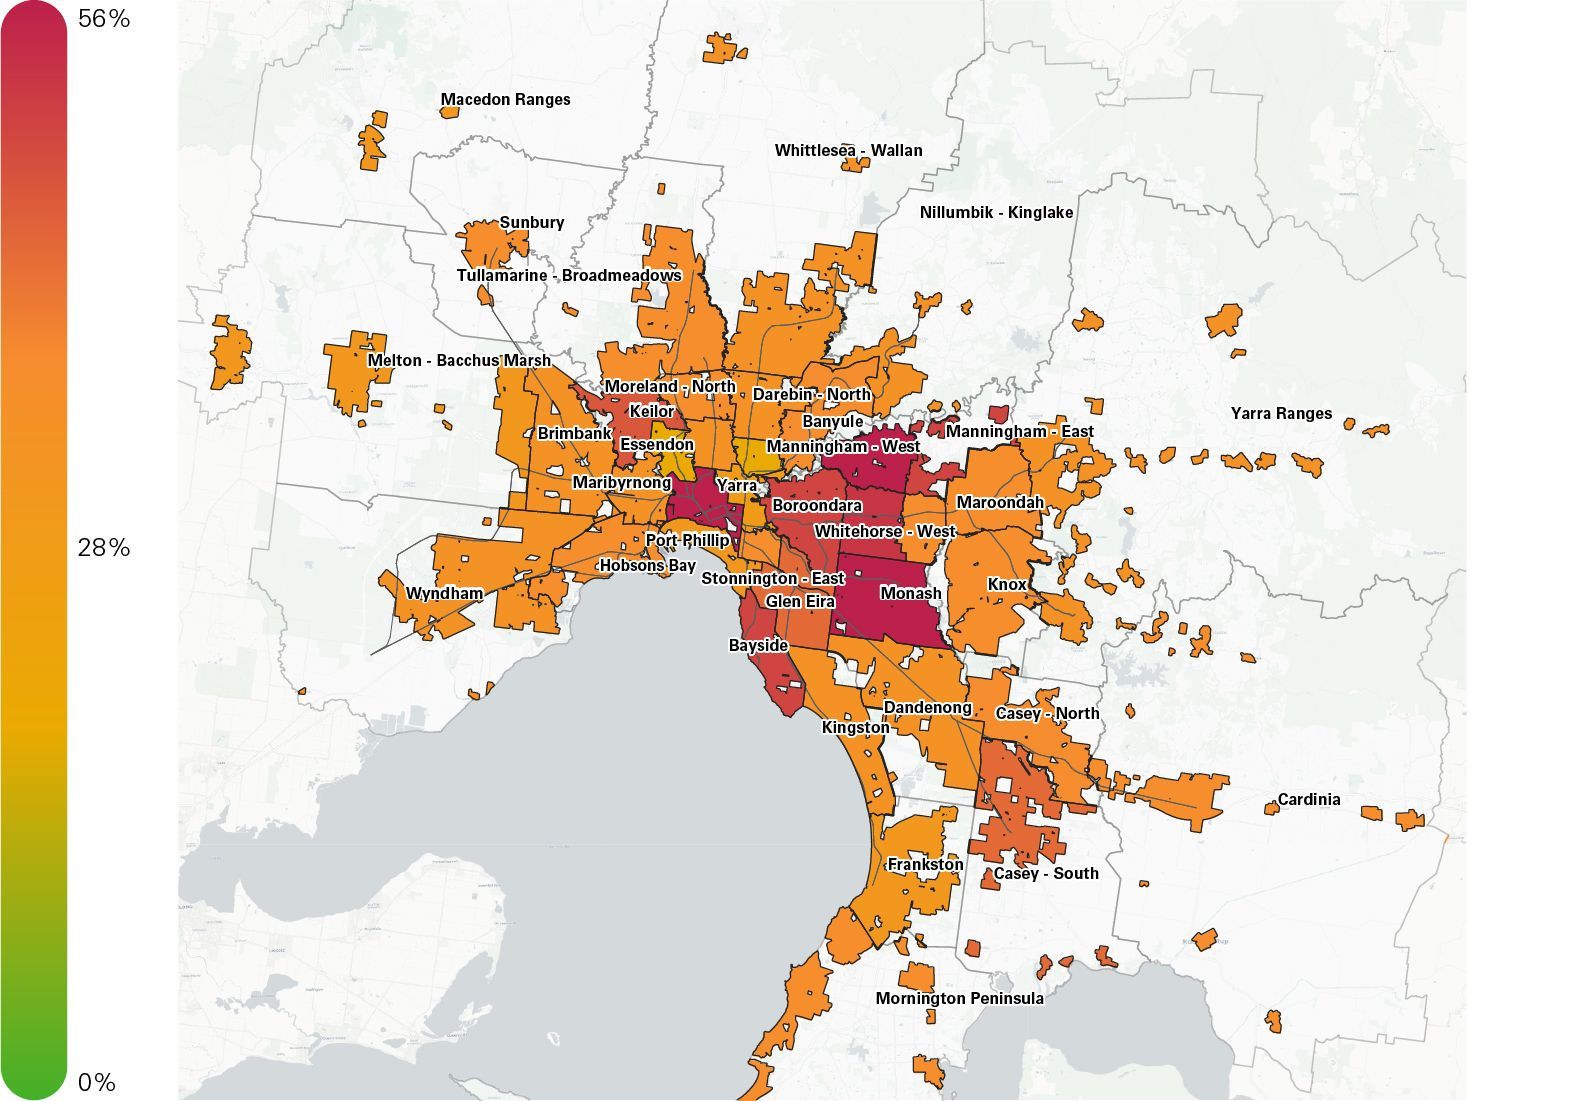 Affordable Housing Index 2018